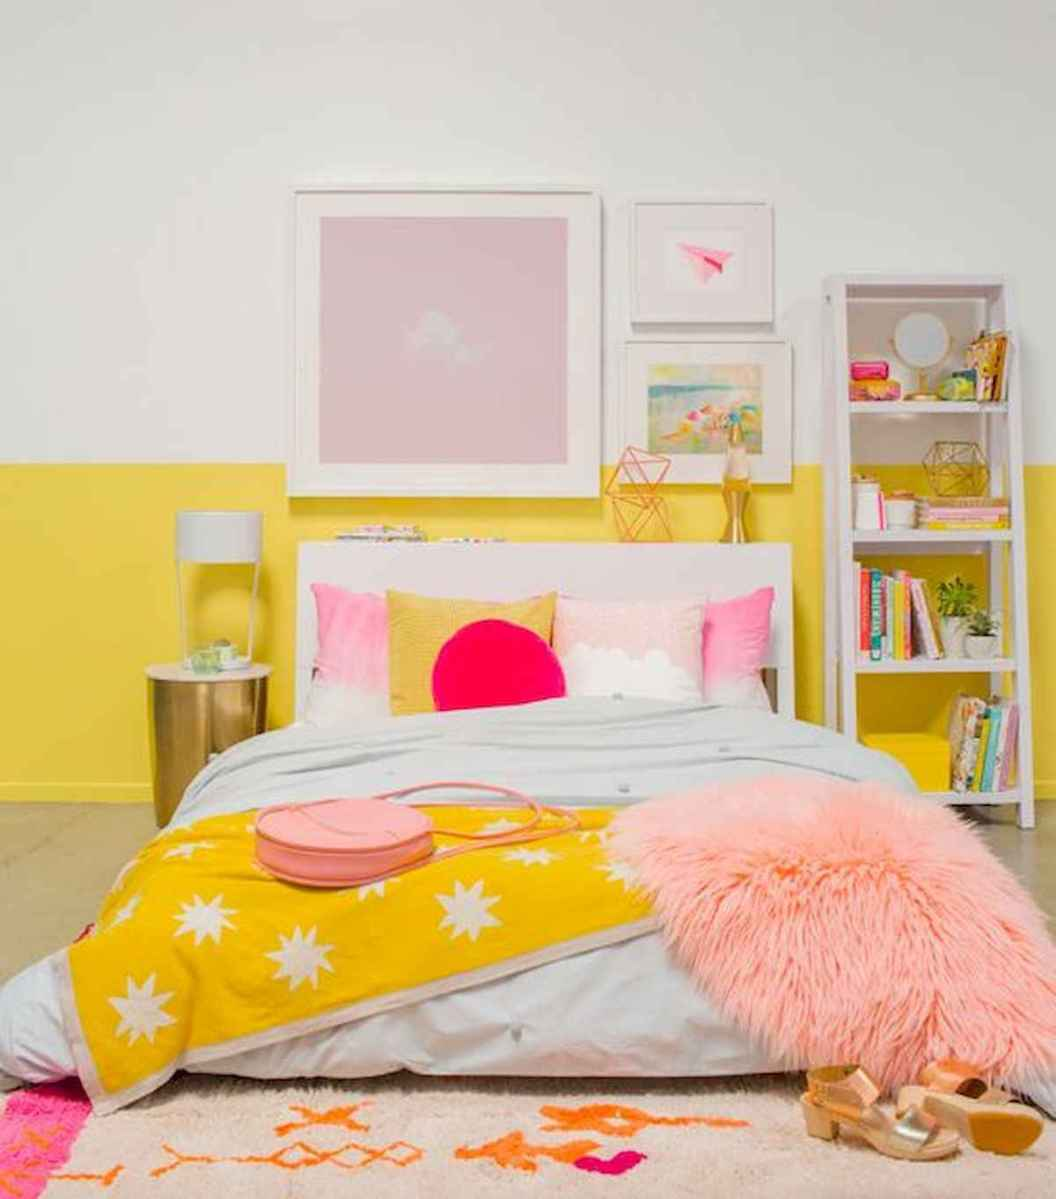 70+ Awesome Colorful Bedroom Decor Ideas And Remodel for ...